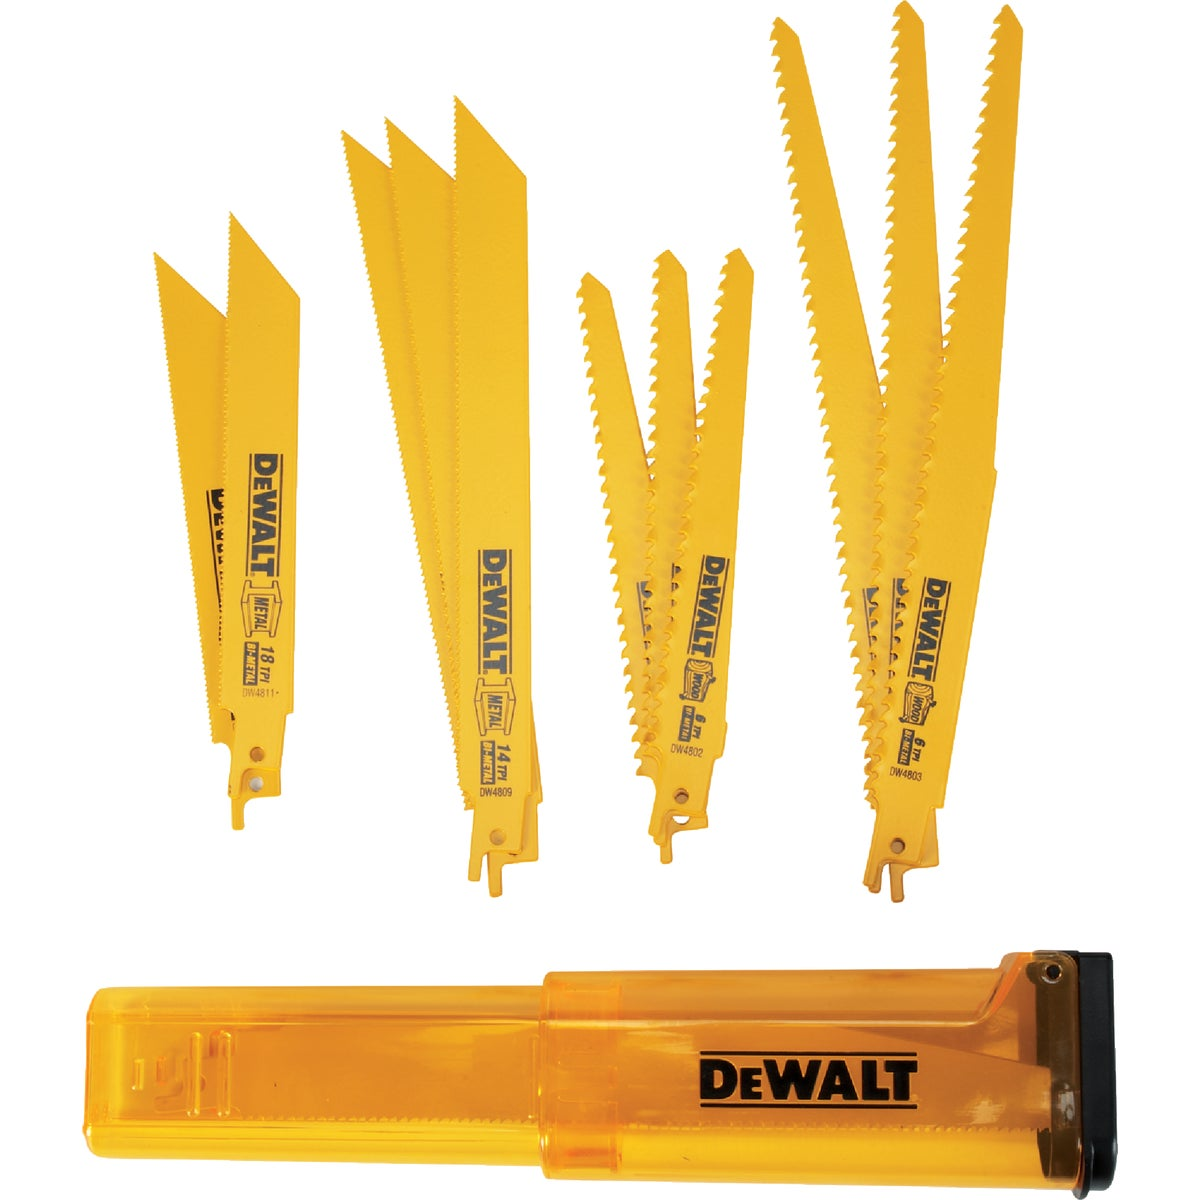 12PC RECIP BLADE SET - DW4892 by DeWalt